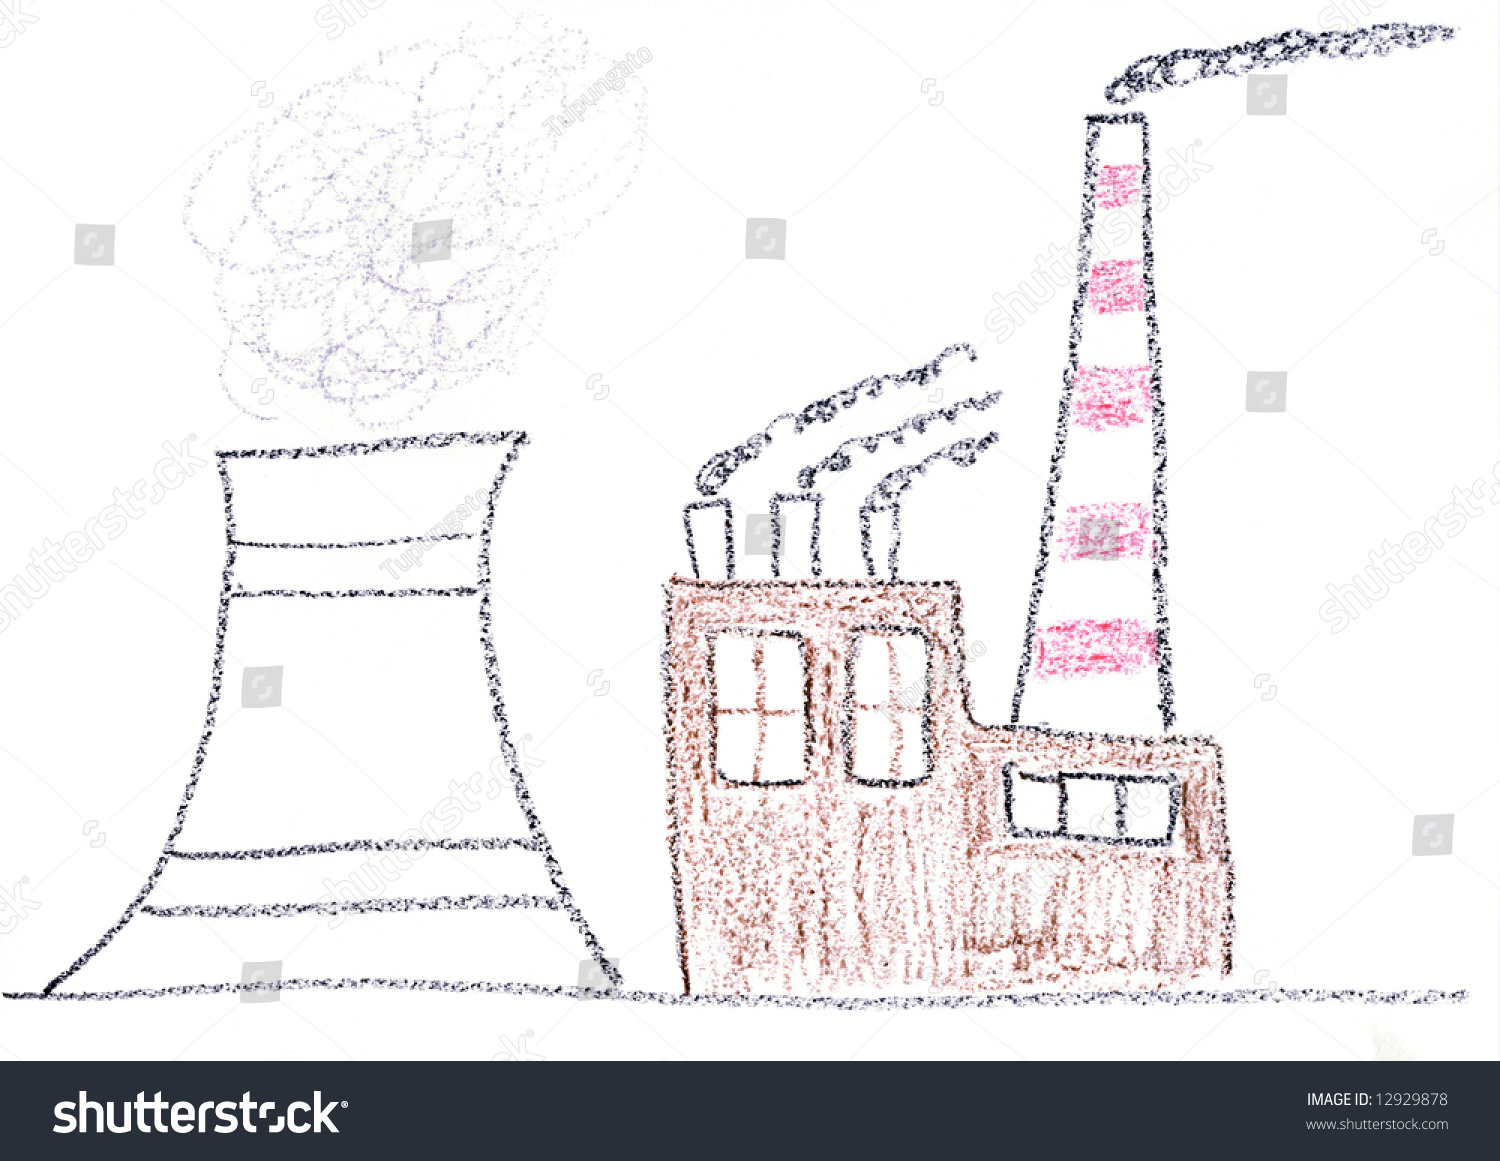 Stock Photo Child Drawing Of Nuclear Power Plant Made With Wax Crayons